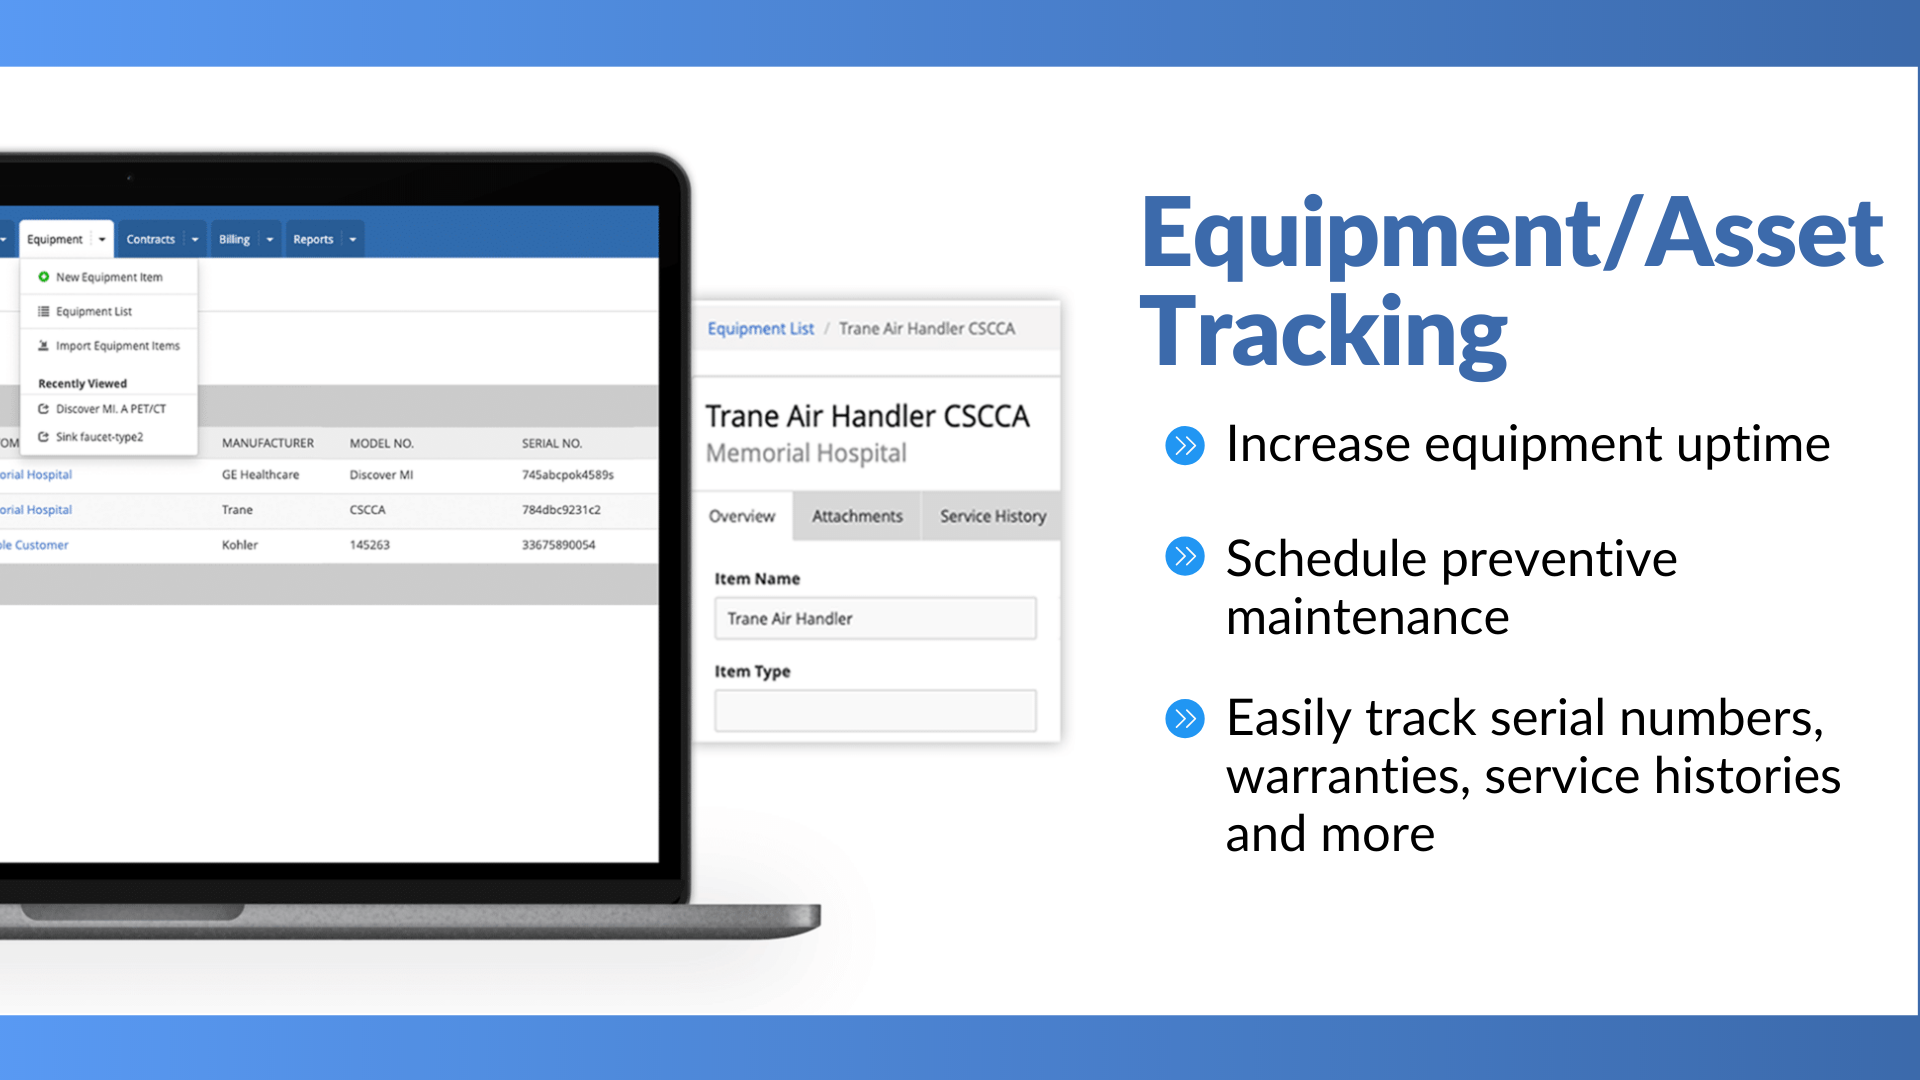 Increase equipment uptime and easily track serial numbers, warranties, service histories, and more.